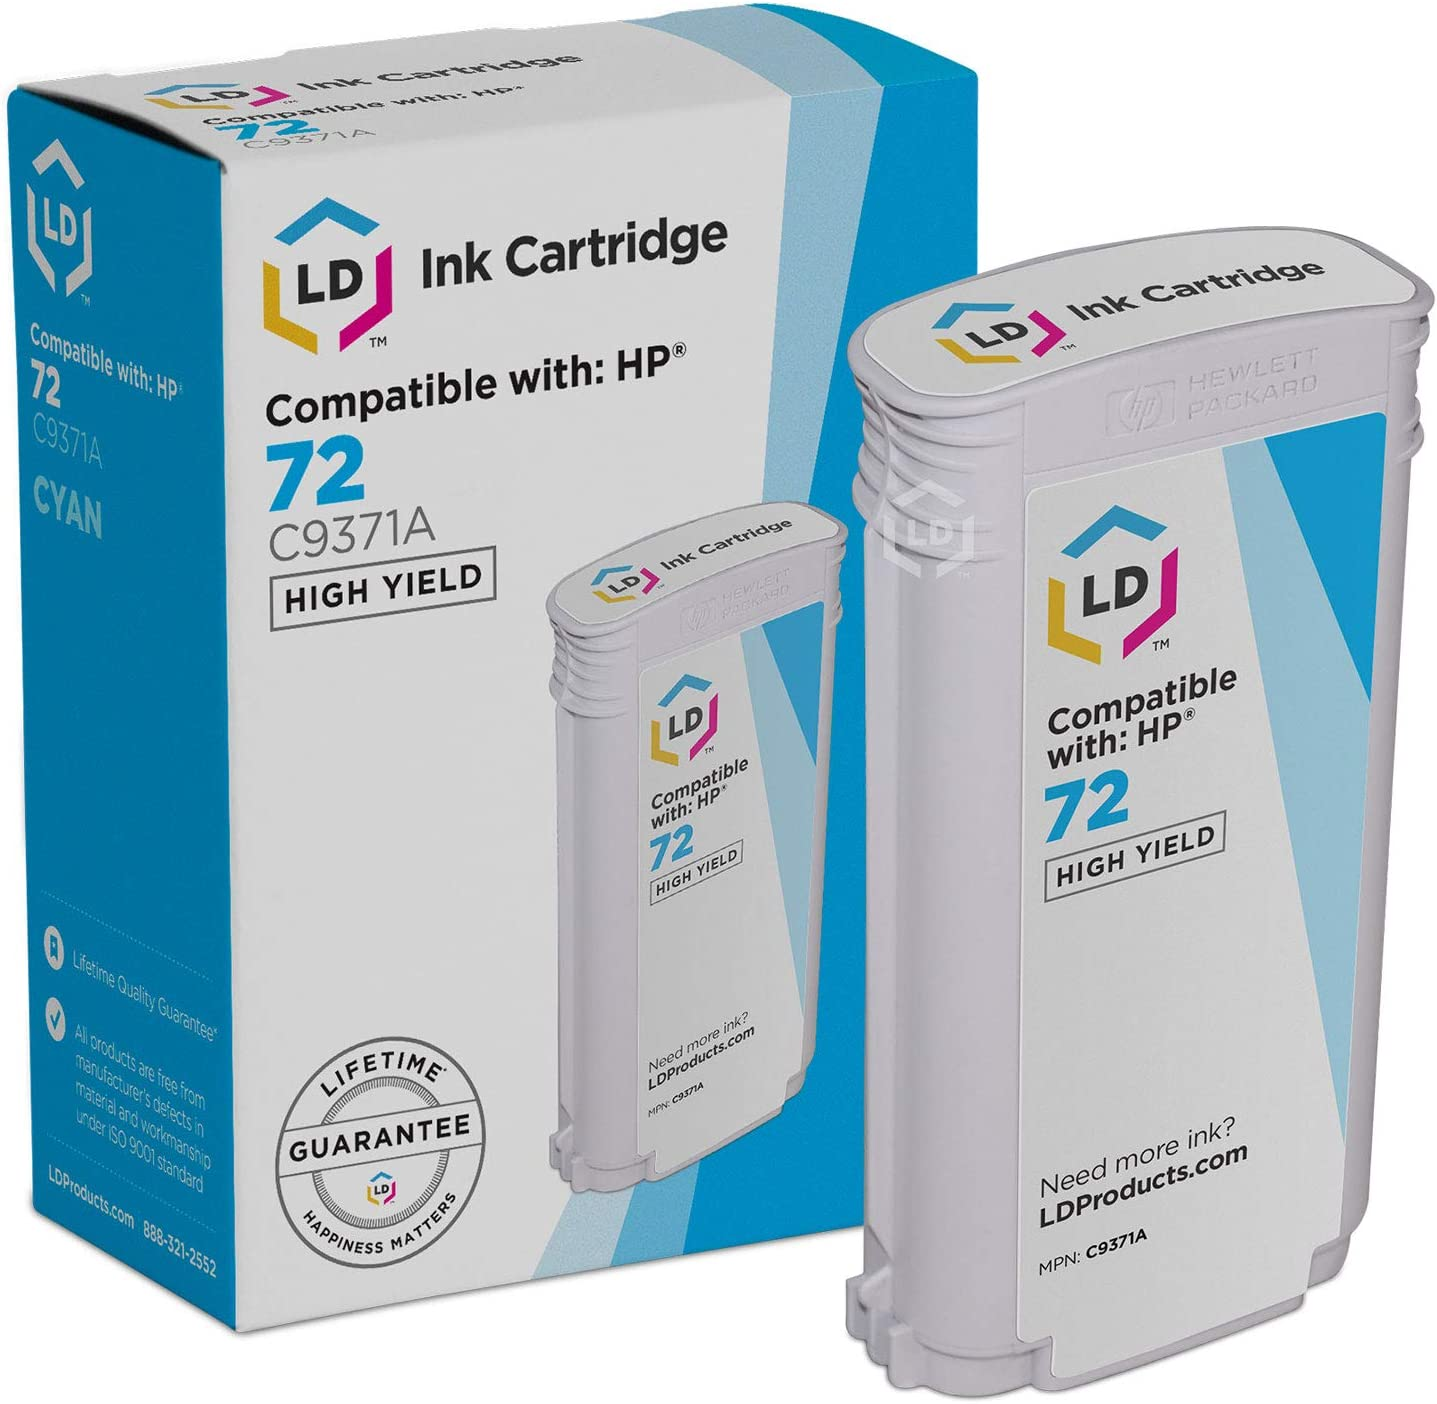 LD Remanufactured Ink Cartridge Replacement for HP 72 C9371A High Yield (Cyan)